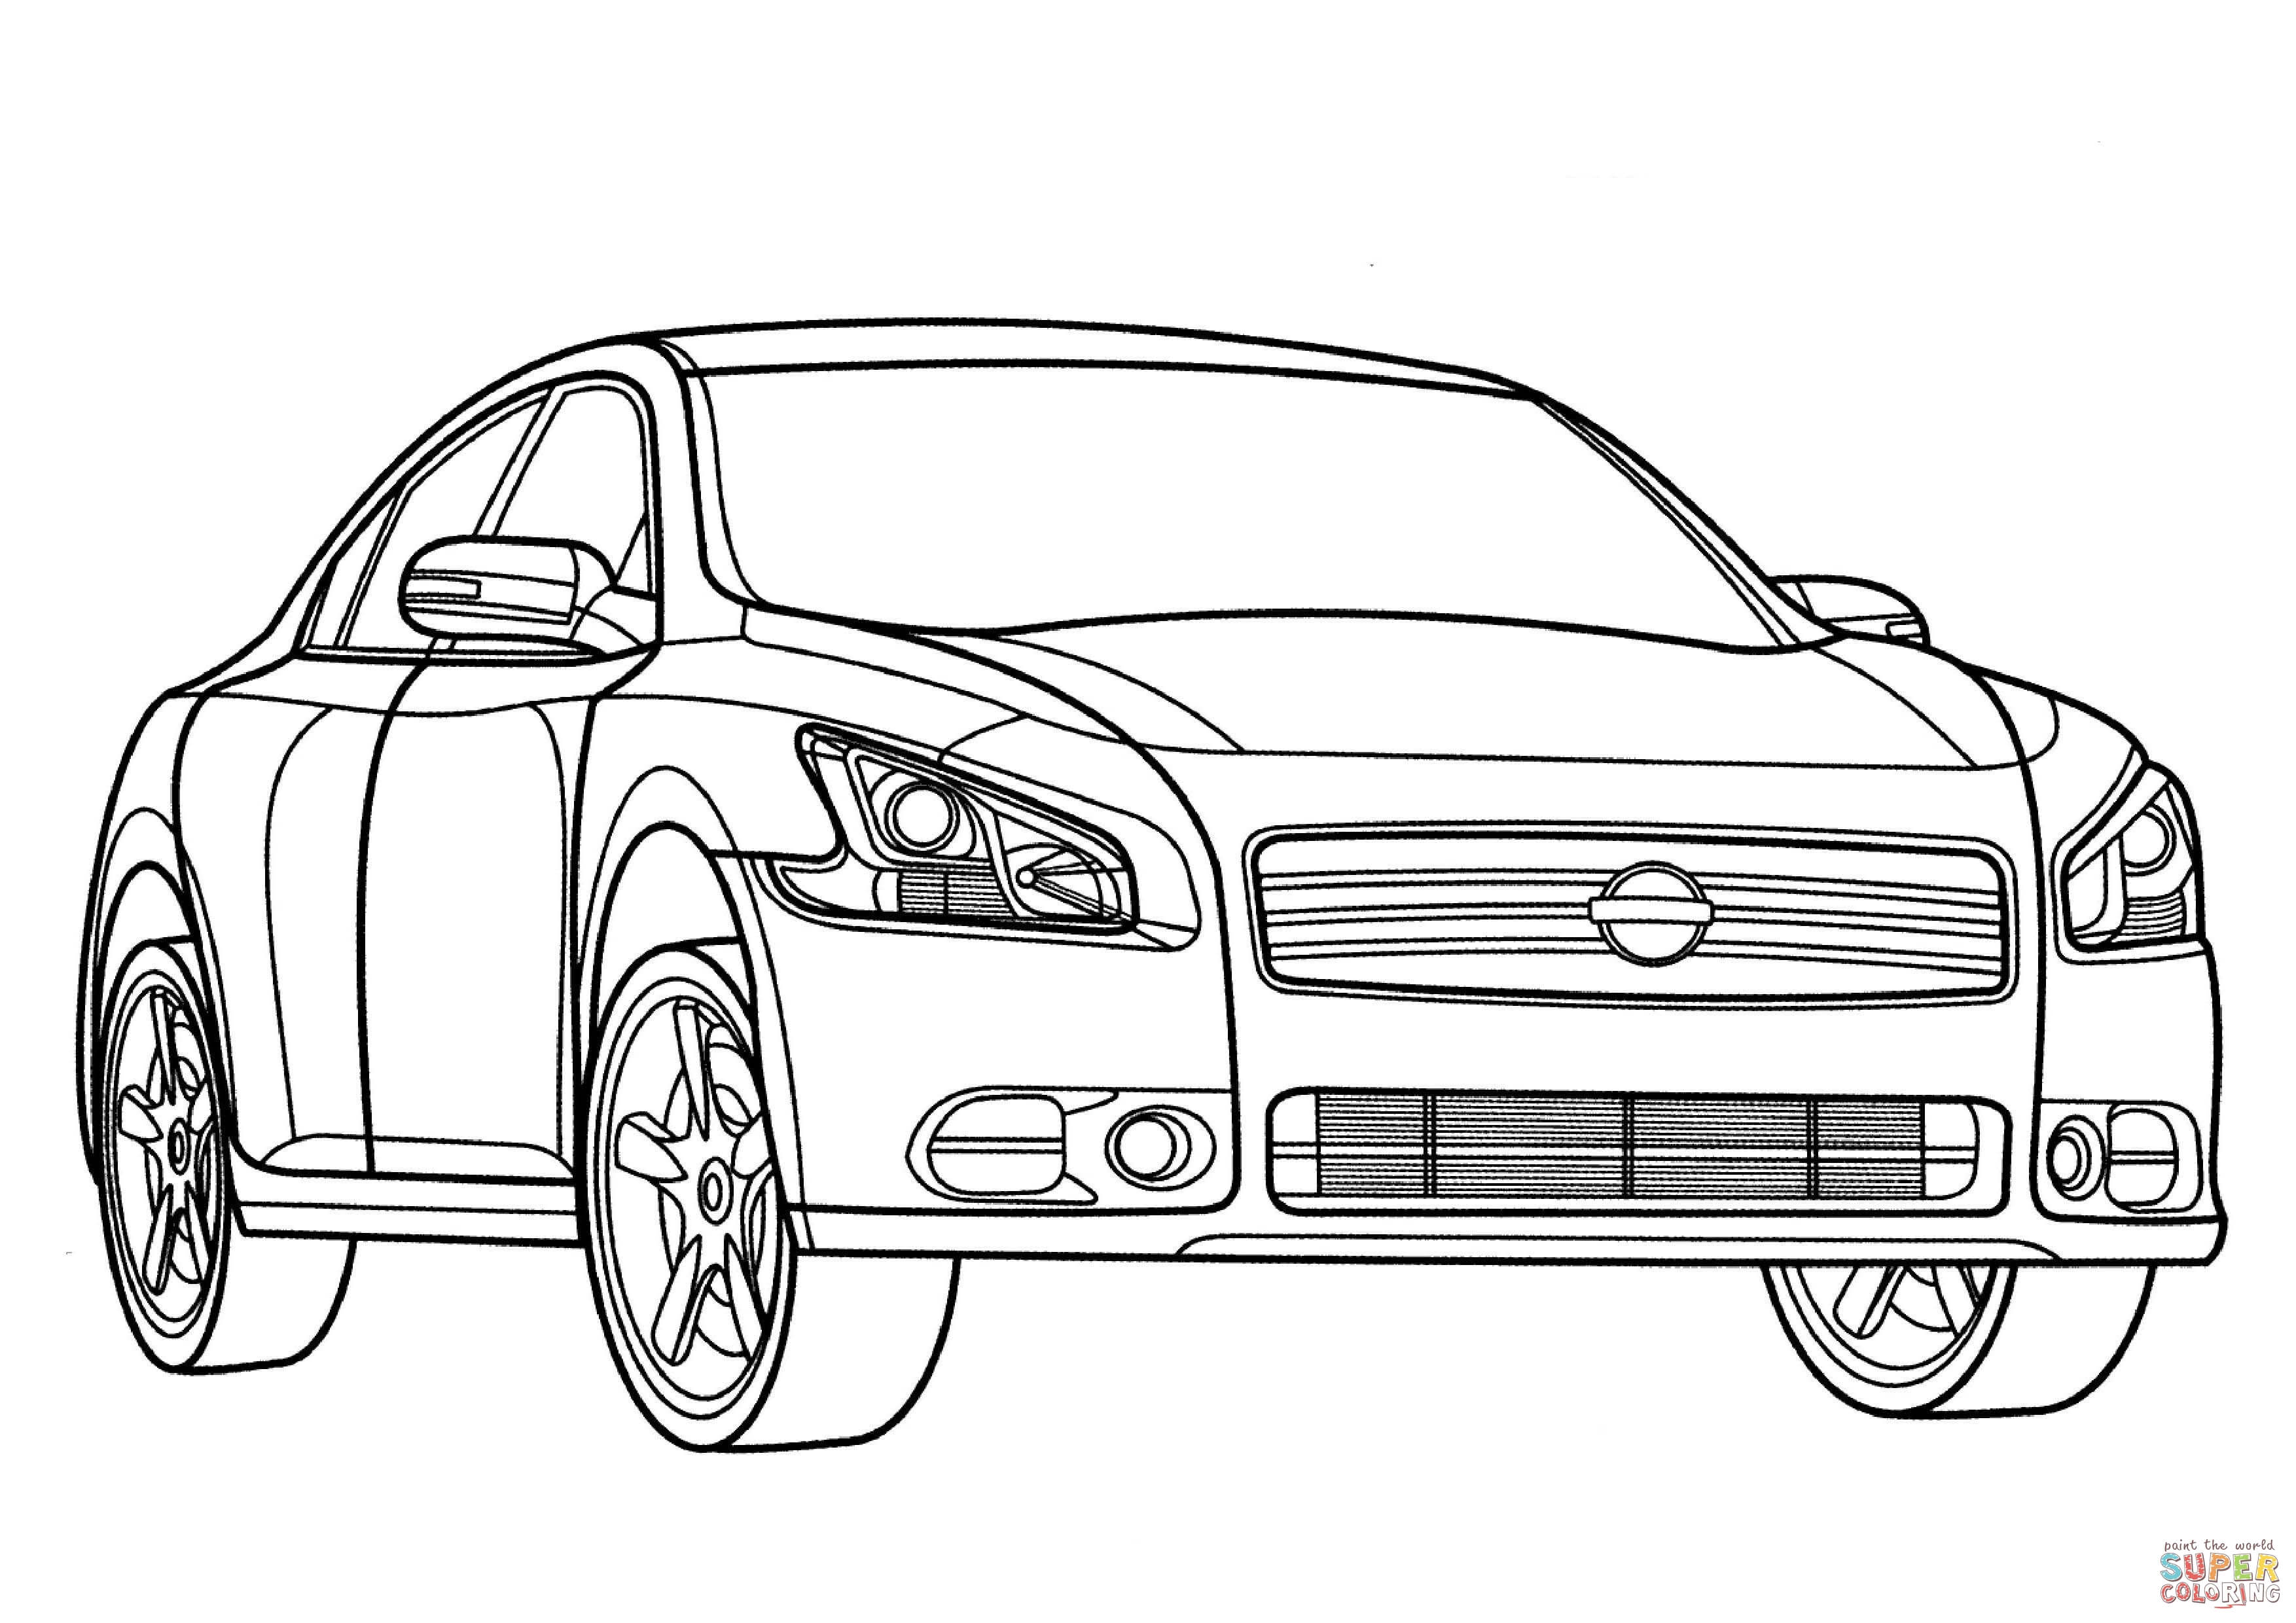 Nissan Skyline Gtr R34 Coloring Pages